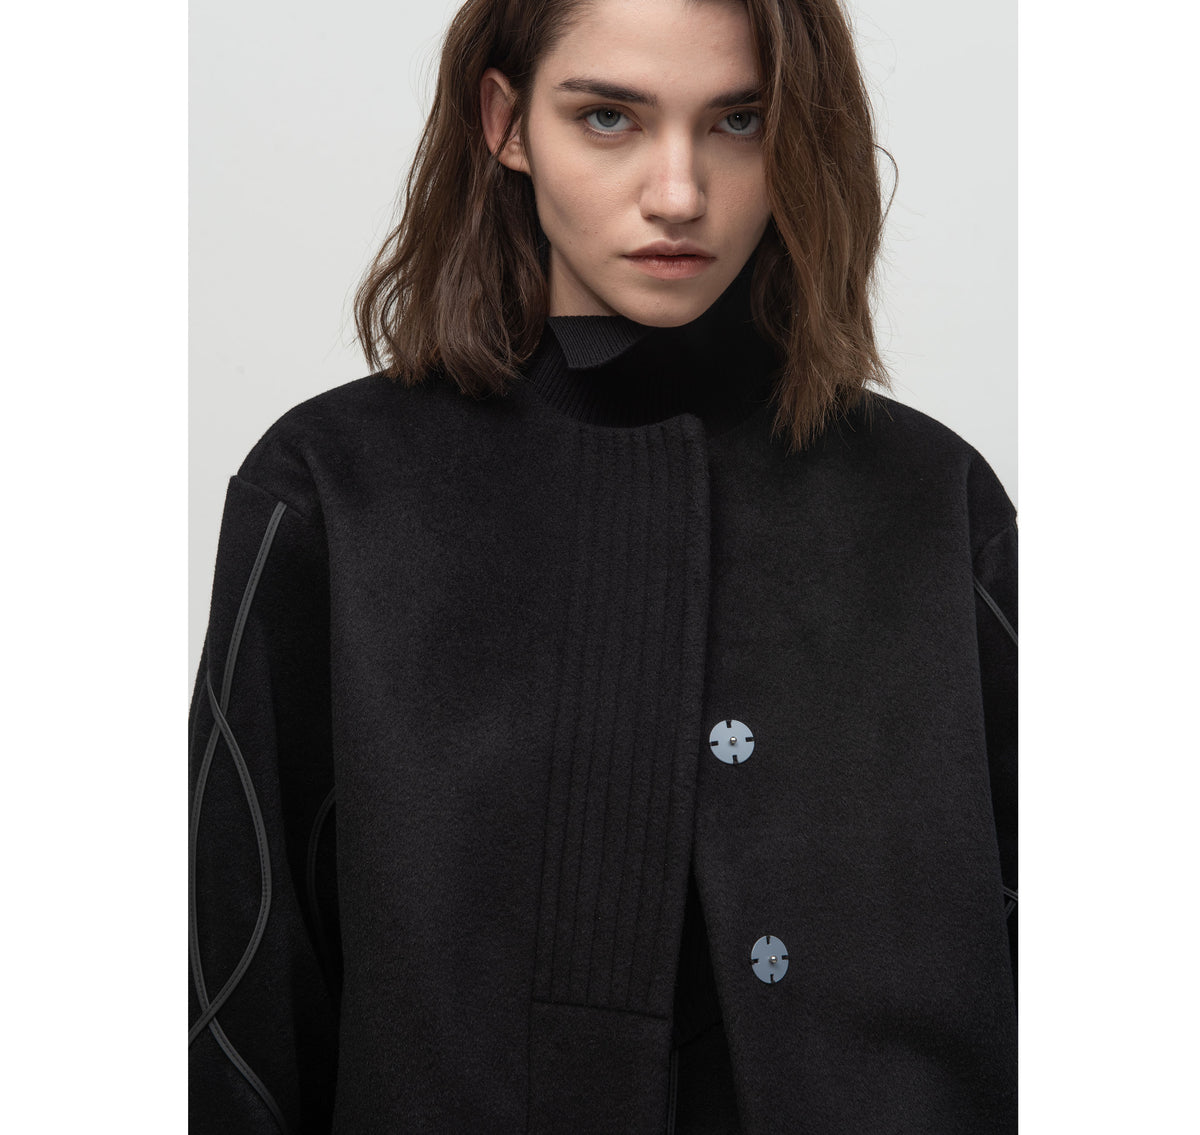 SEGUE Wavy Lines Wool Jacket